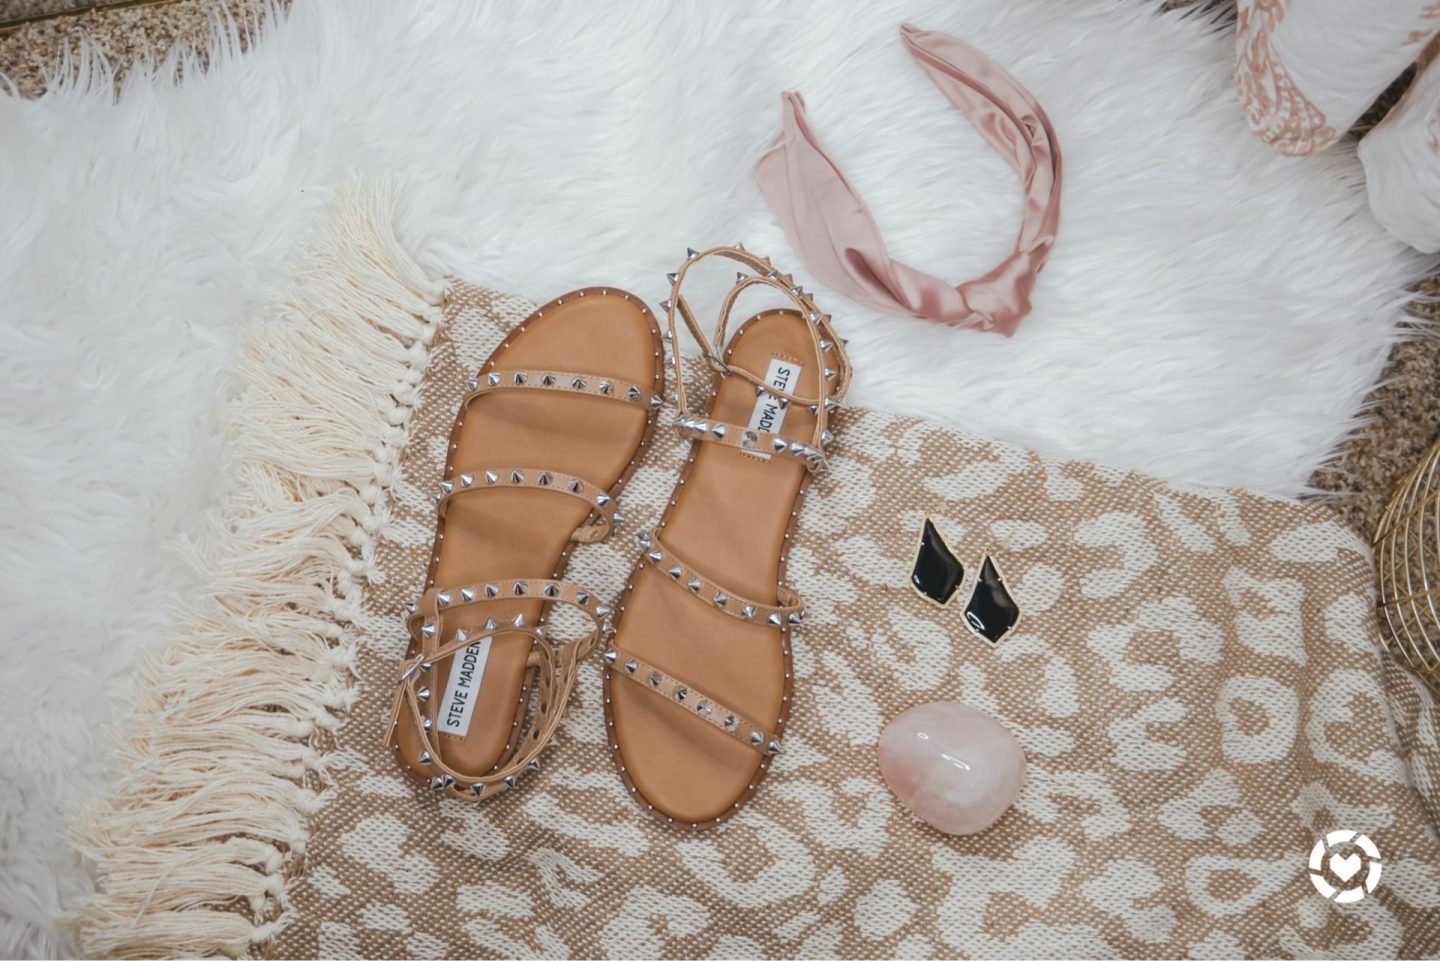 Best Shoes to Rock this Summer // Summer Shoes // Summer Sandals // Best Shoes for Summer // Summer 2020 Trends // Summer Fashion // Spring Fashion   Beauty With Lily #summerfashion #summershoes